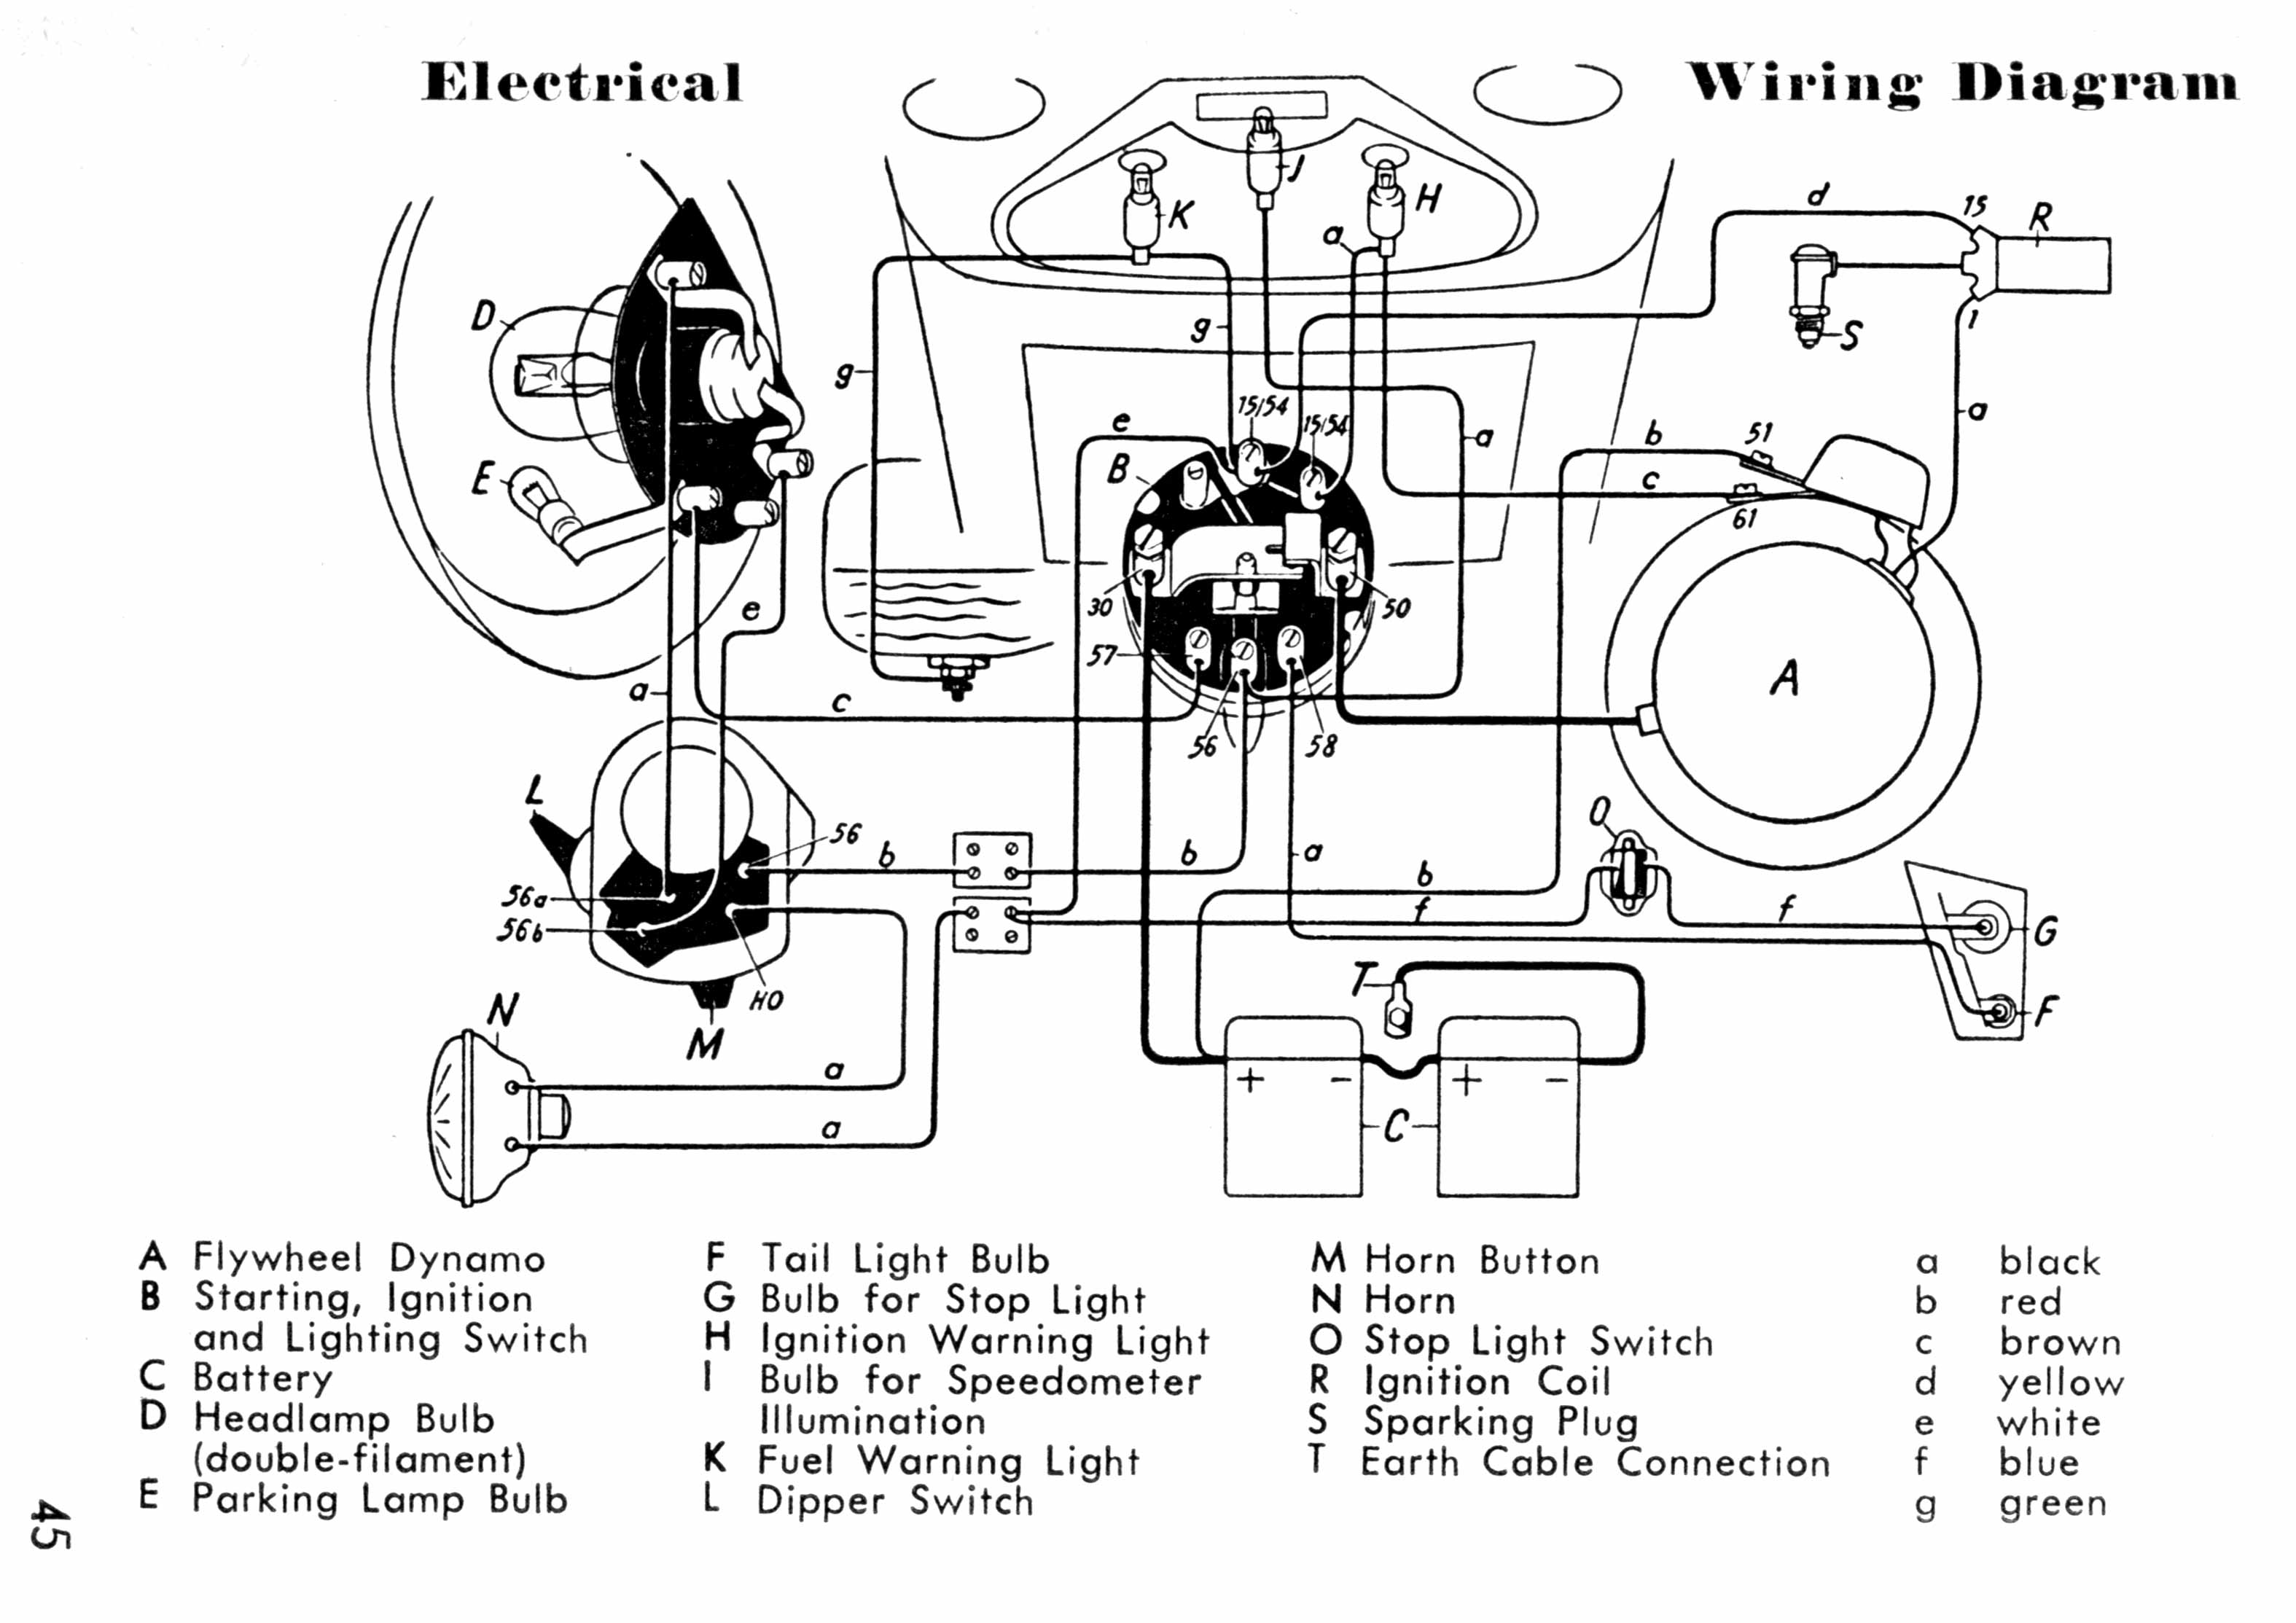 nsu_wiring_diagram 1956 nsu prima the story thru pictures jet side dump trailer wiring diagram at edmiracle.co